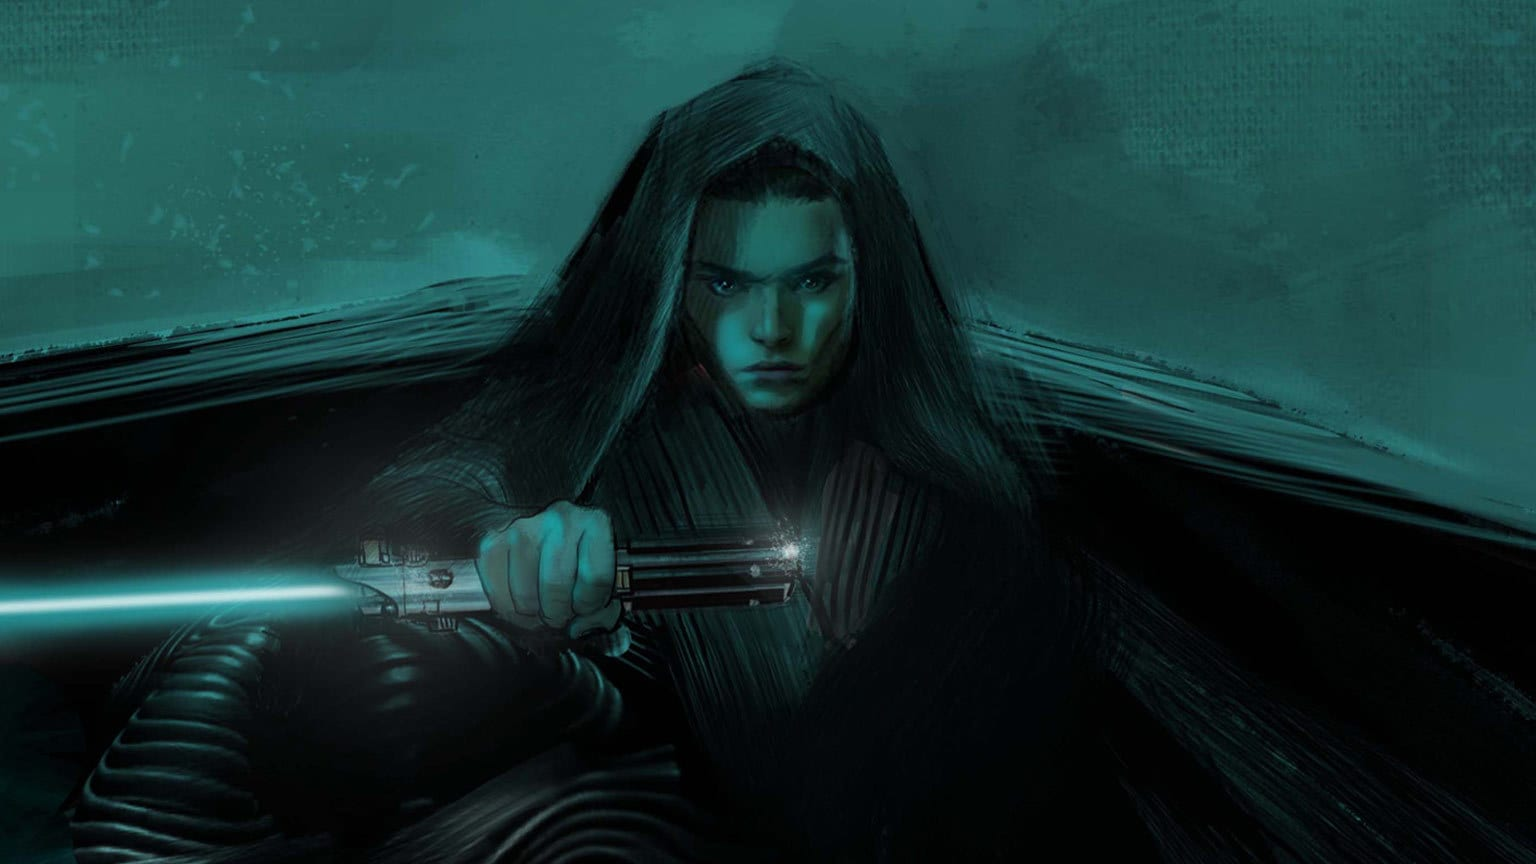 Check Out 5 Never-Before-Seen Works of Concept Art from The Art of Star Wars: The Rise of Skywalker